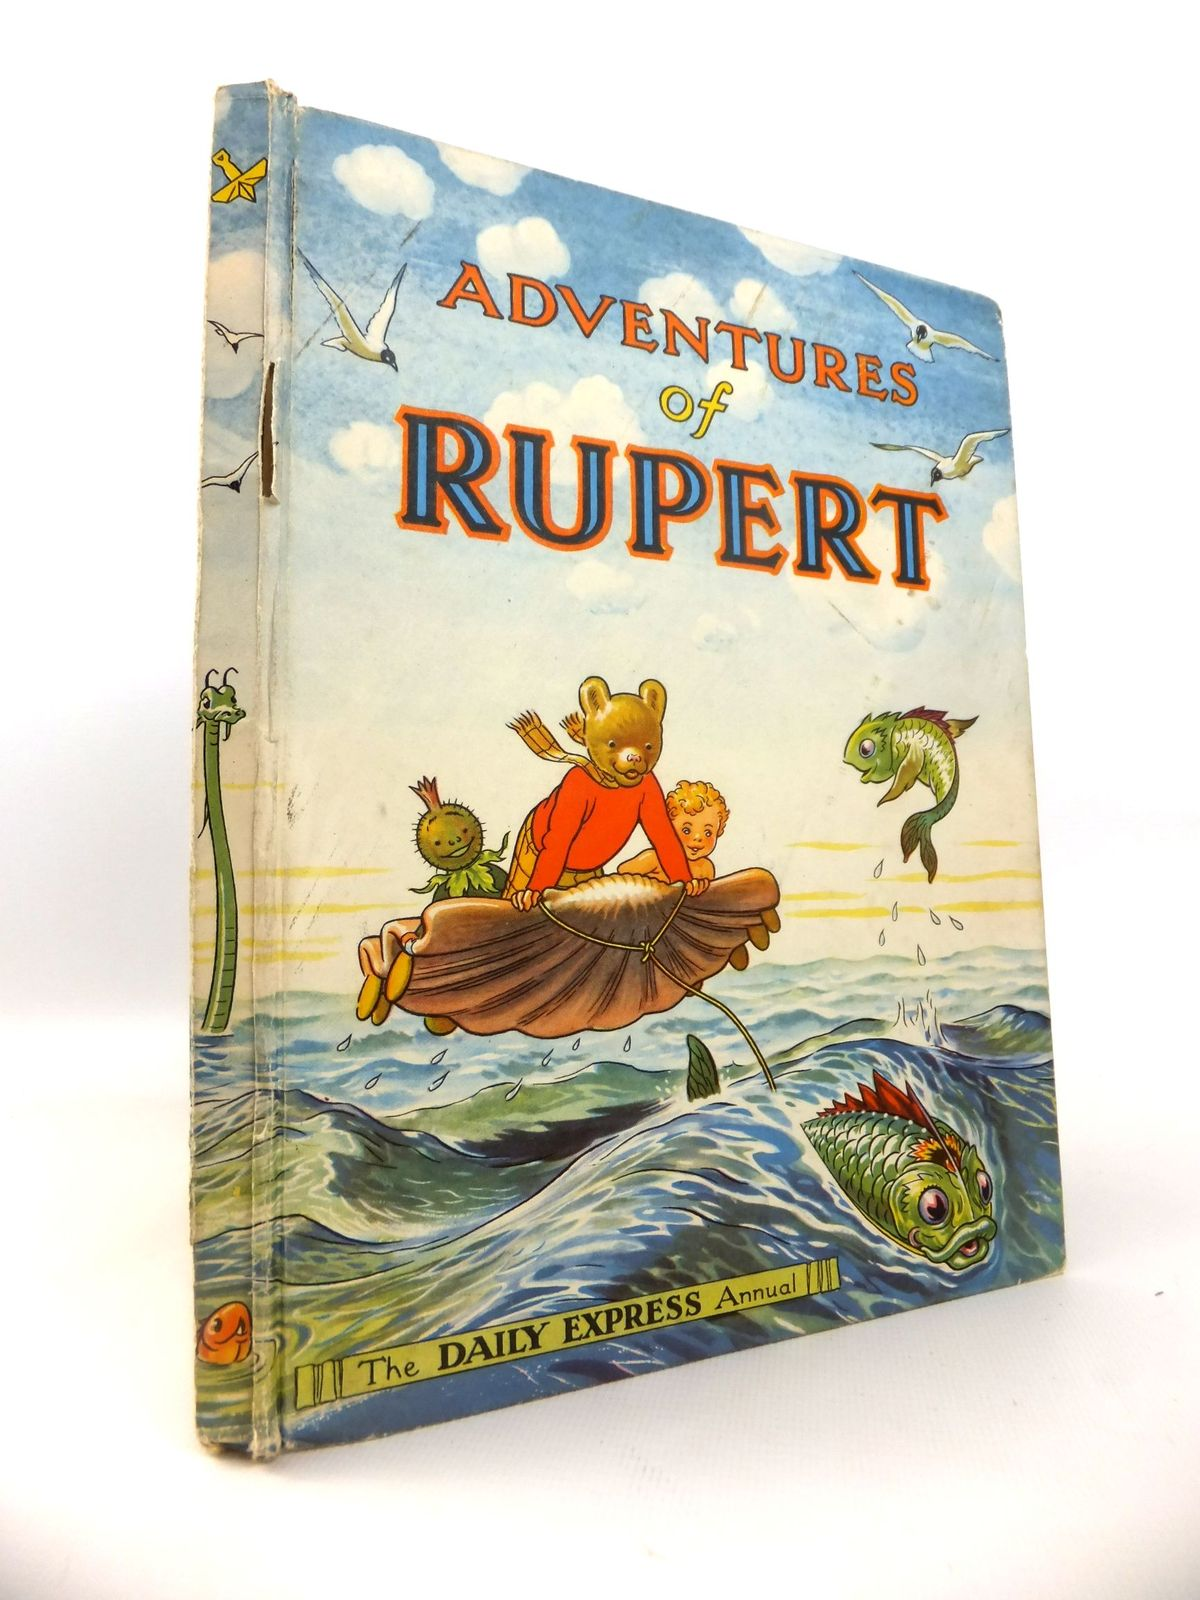 Photo of RUPERT ANNUAL 1950 - ADVENTURES OF RUPERT written by Bestall, Alfred illustrated by Bestall, Alfred published by Daily Express (STOCK CODE: 1812697)  for sale by Stella & Rose's Books